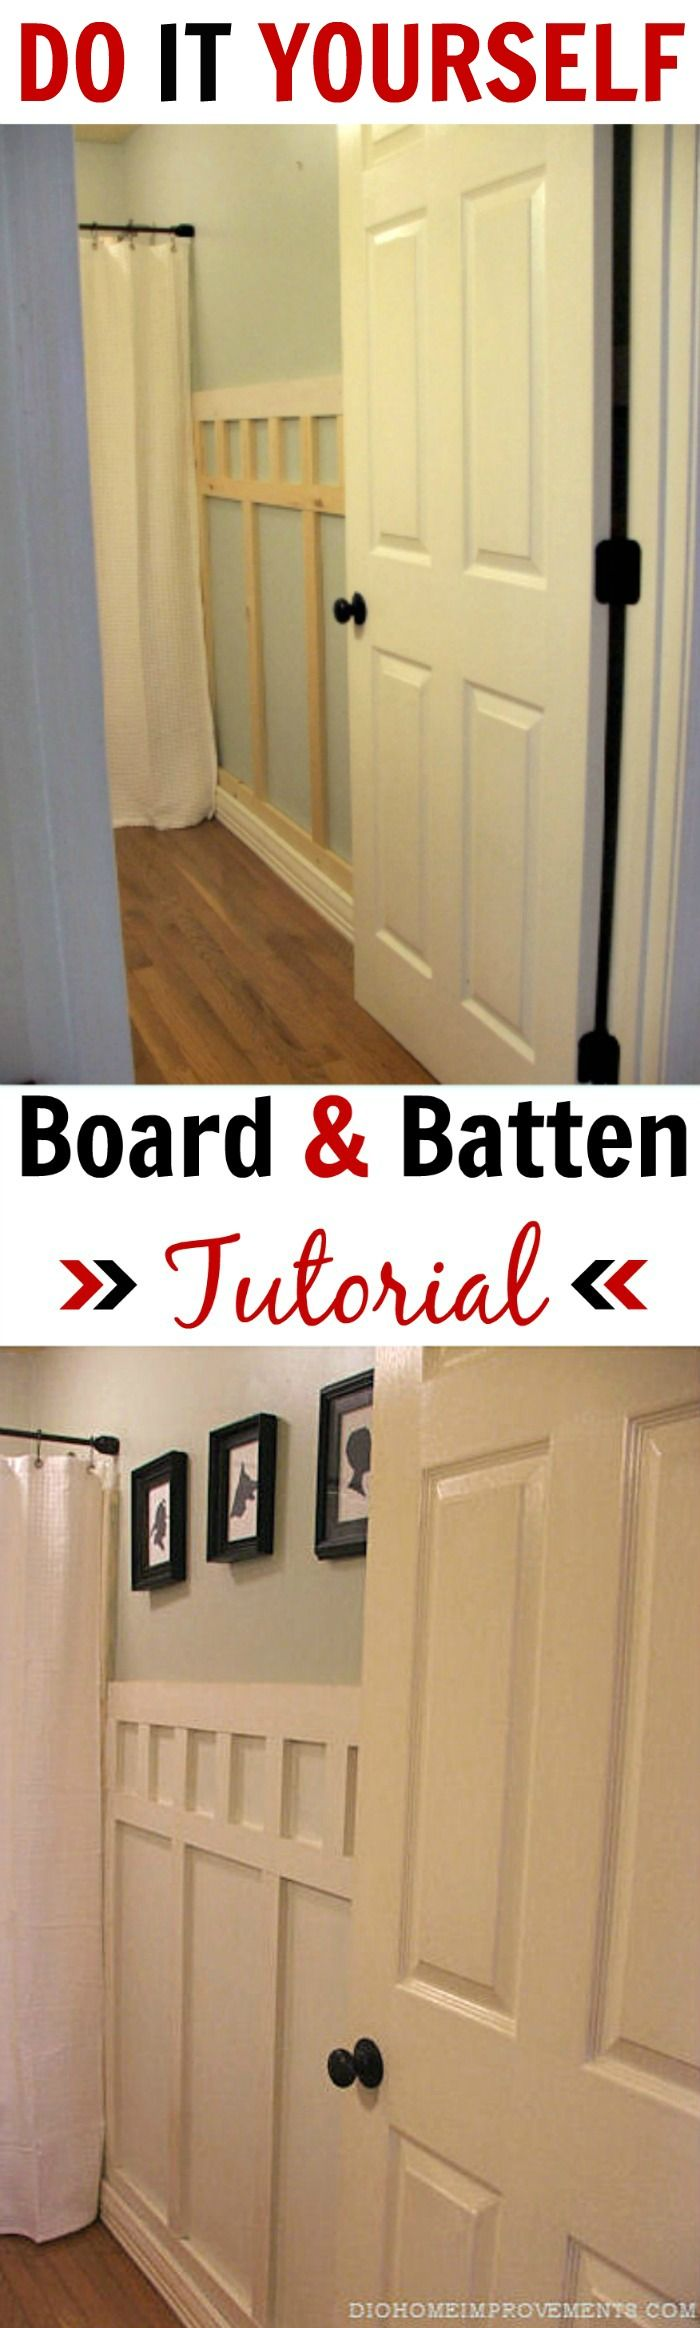 Wood baseboard in bathroom - Boys Bathroom Decor Guest Bathrooms Bathroom Wall Downstairs Bathroom Board And Batten Moulding Wainscoting Diy Projects House Projects